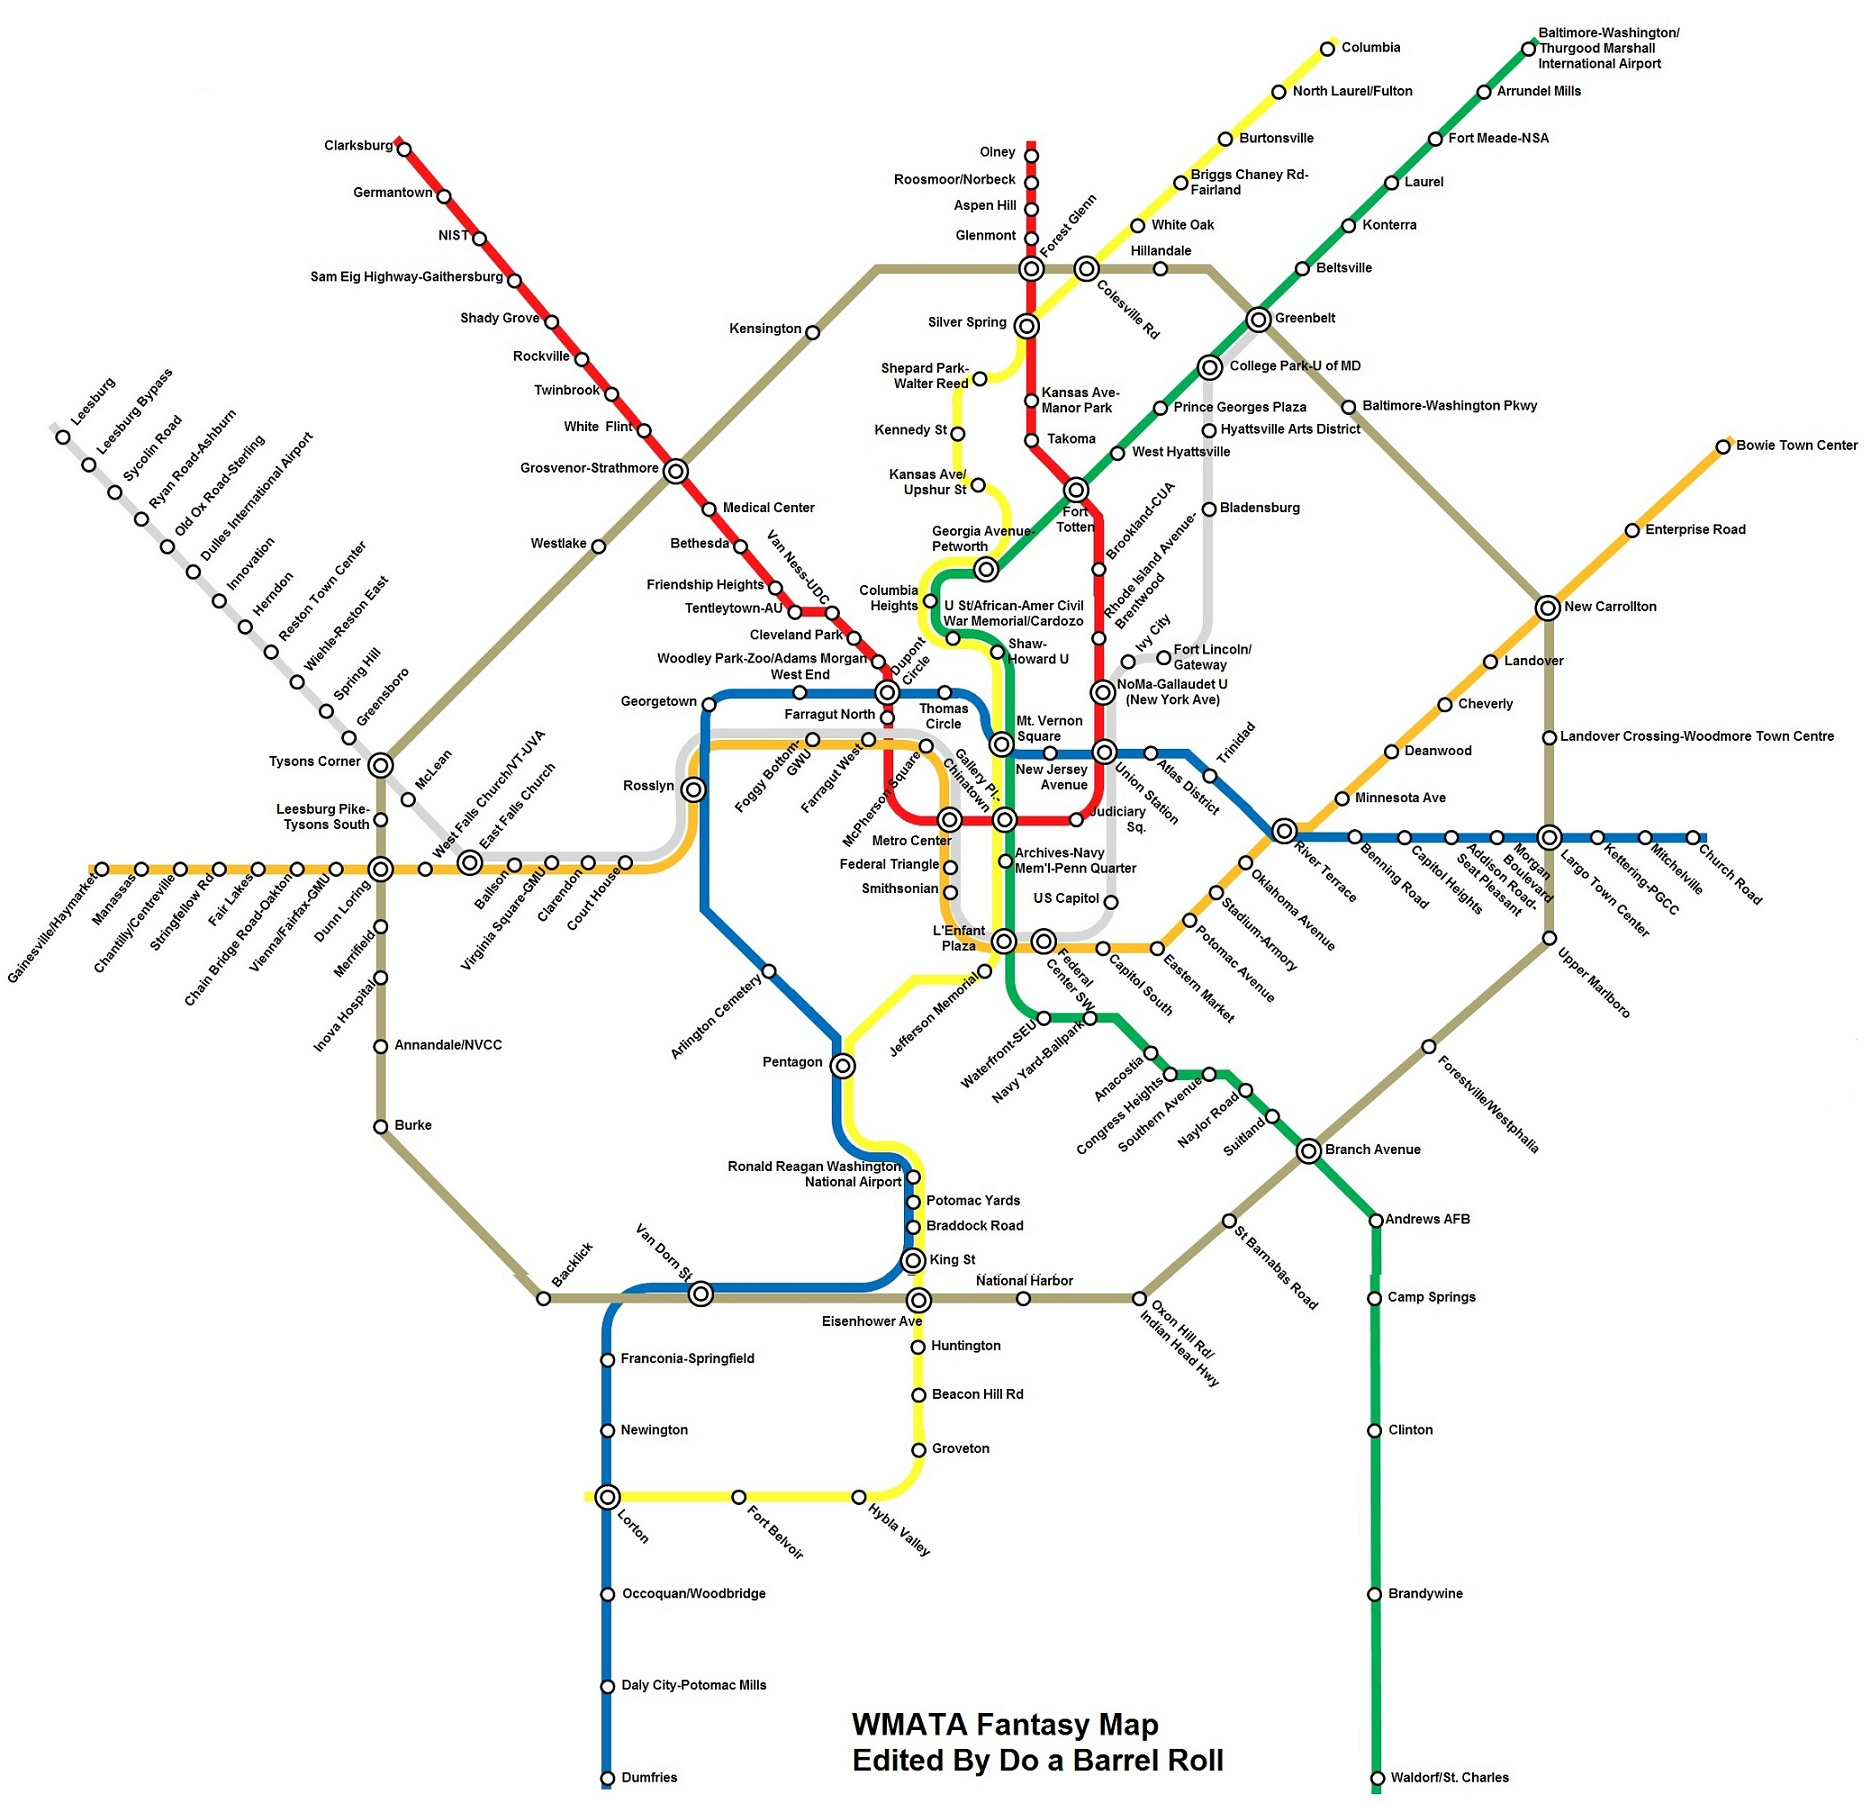 Your dream metro line... (insurance, live, beach) - Washington, DC ...